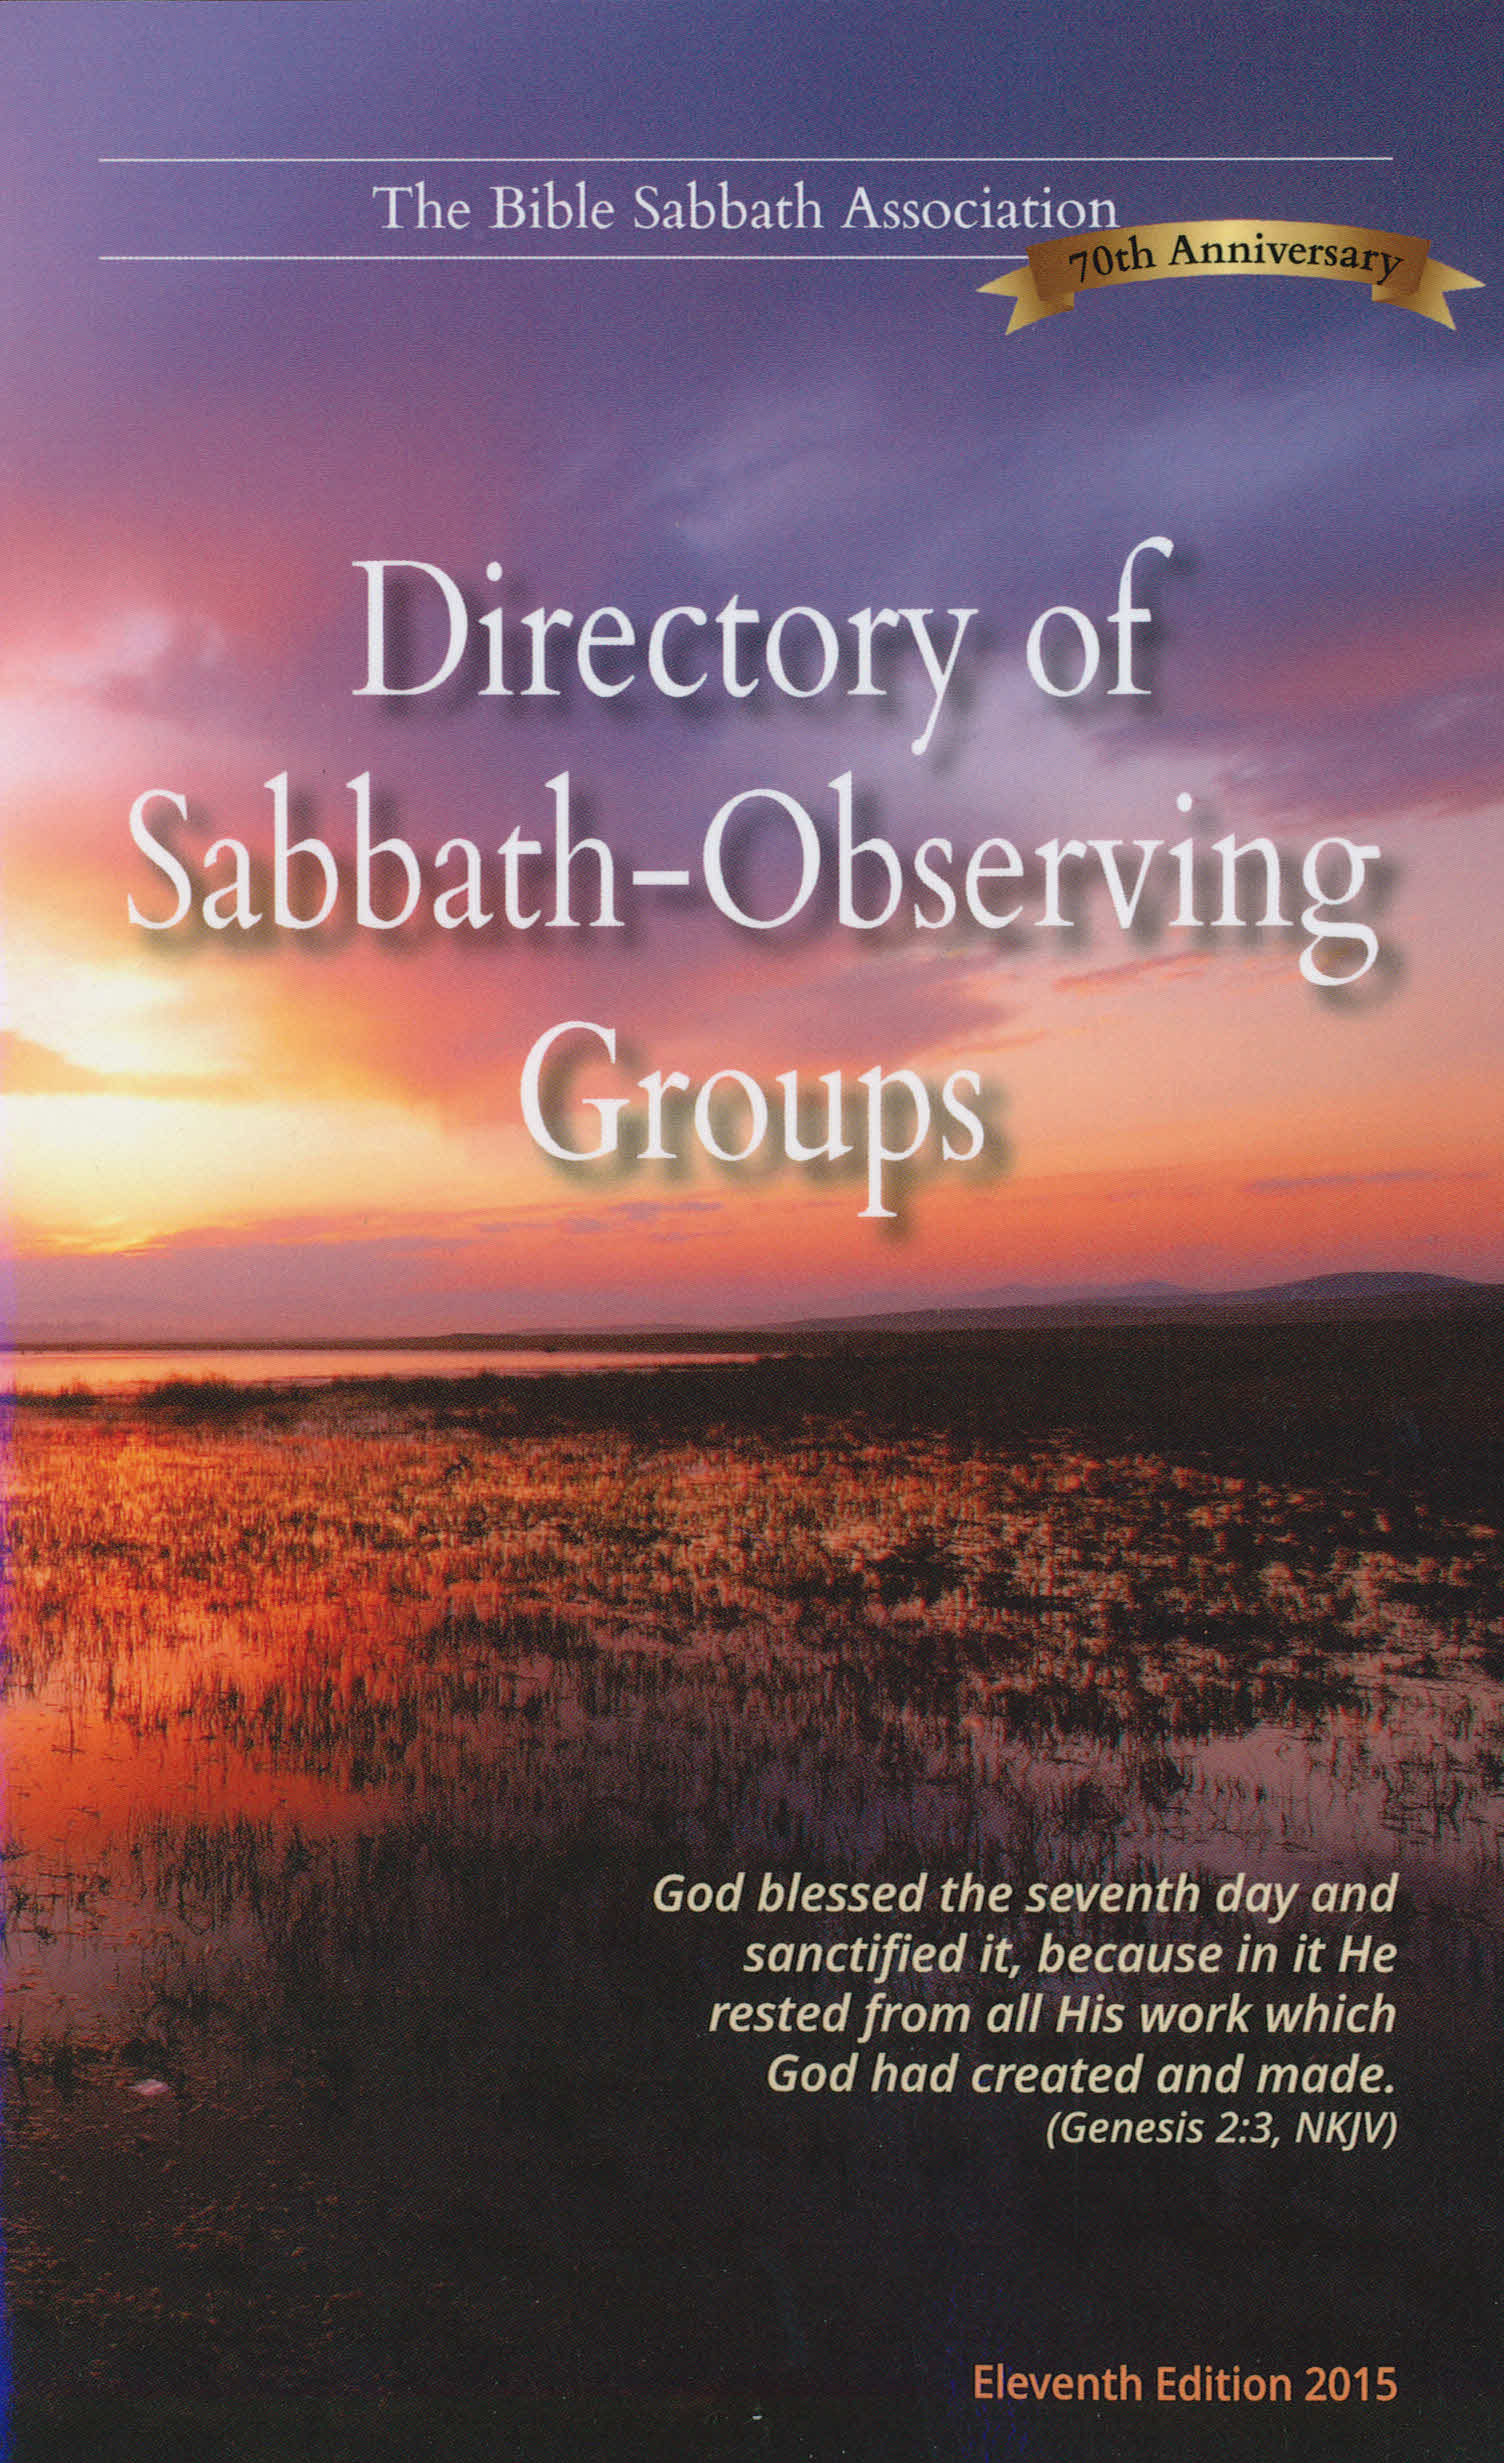 Directory of Sabbath- Observing Groups, Eleventh Edition